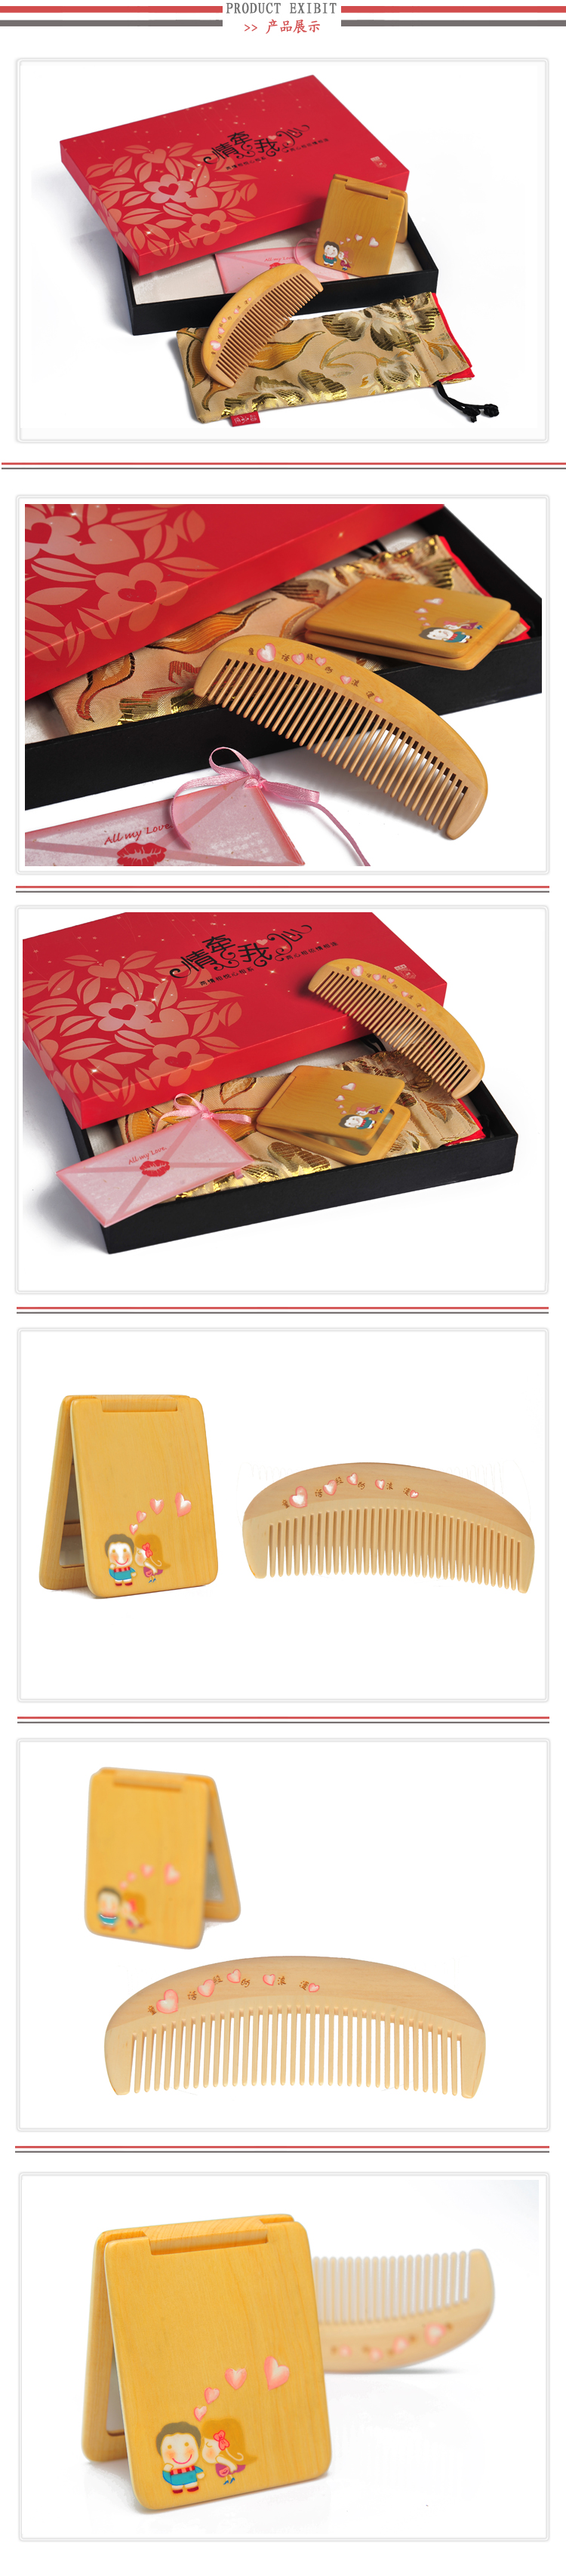 Tan Carpenter creative birthday gift box gift box Valentine's day gift packs of four mirror comb